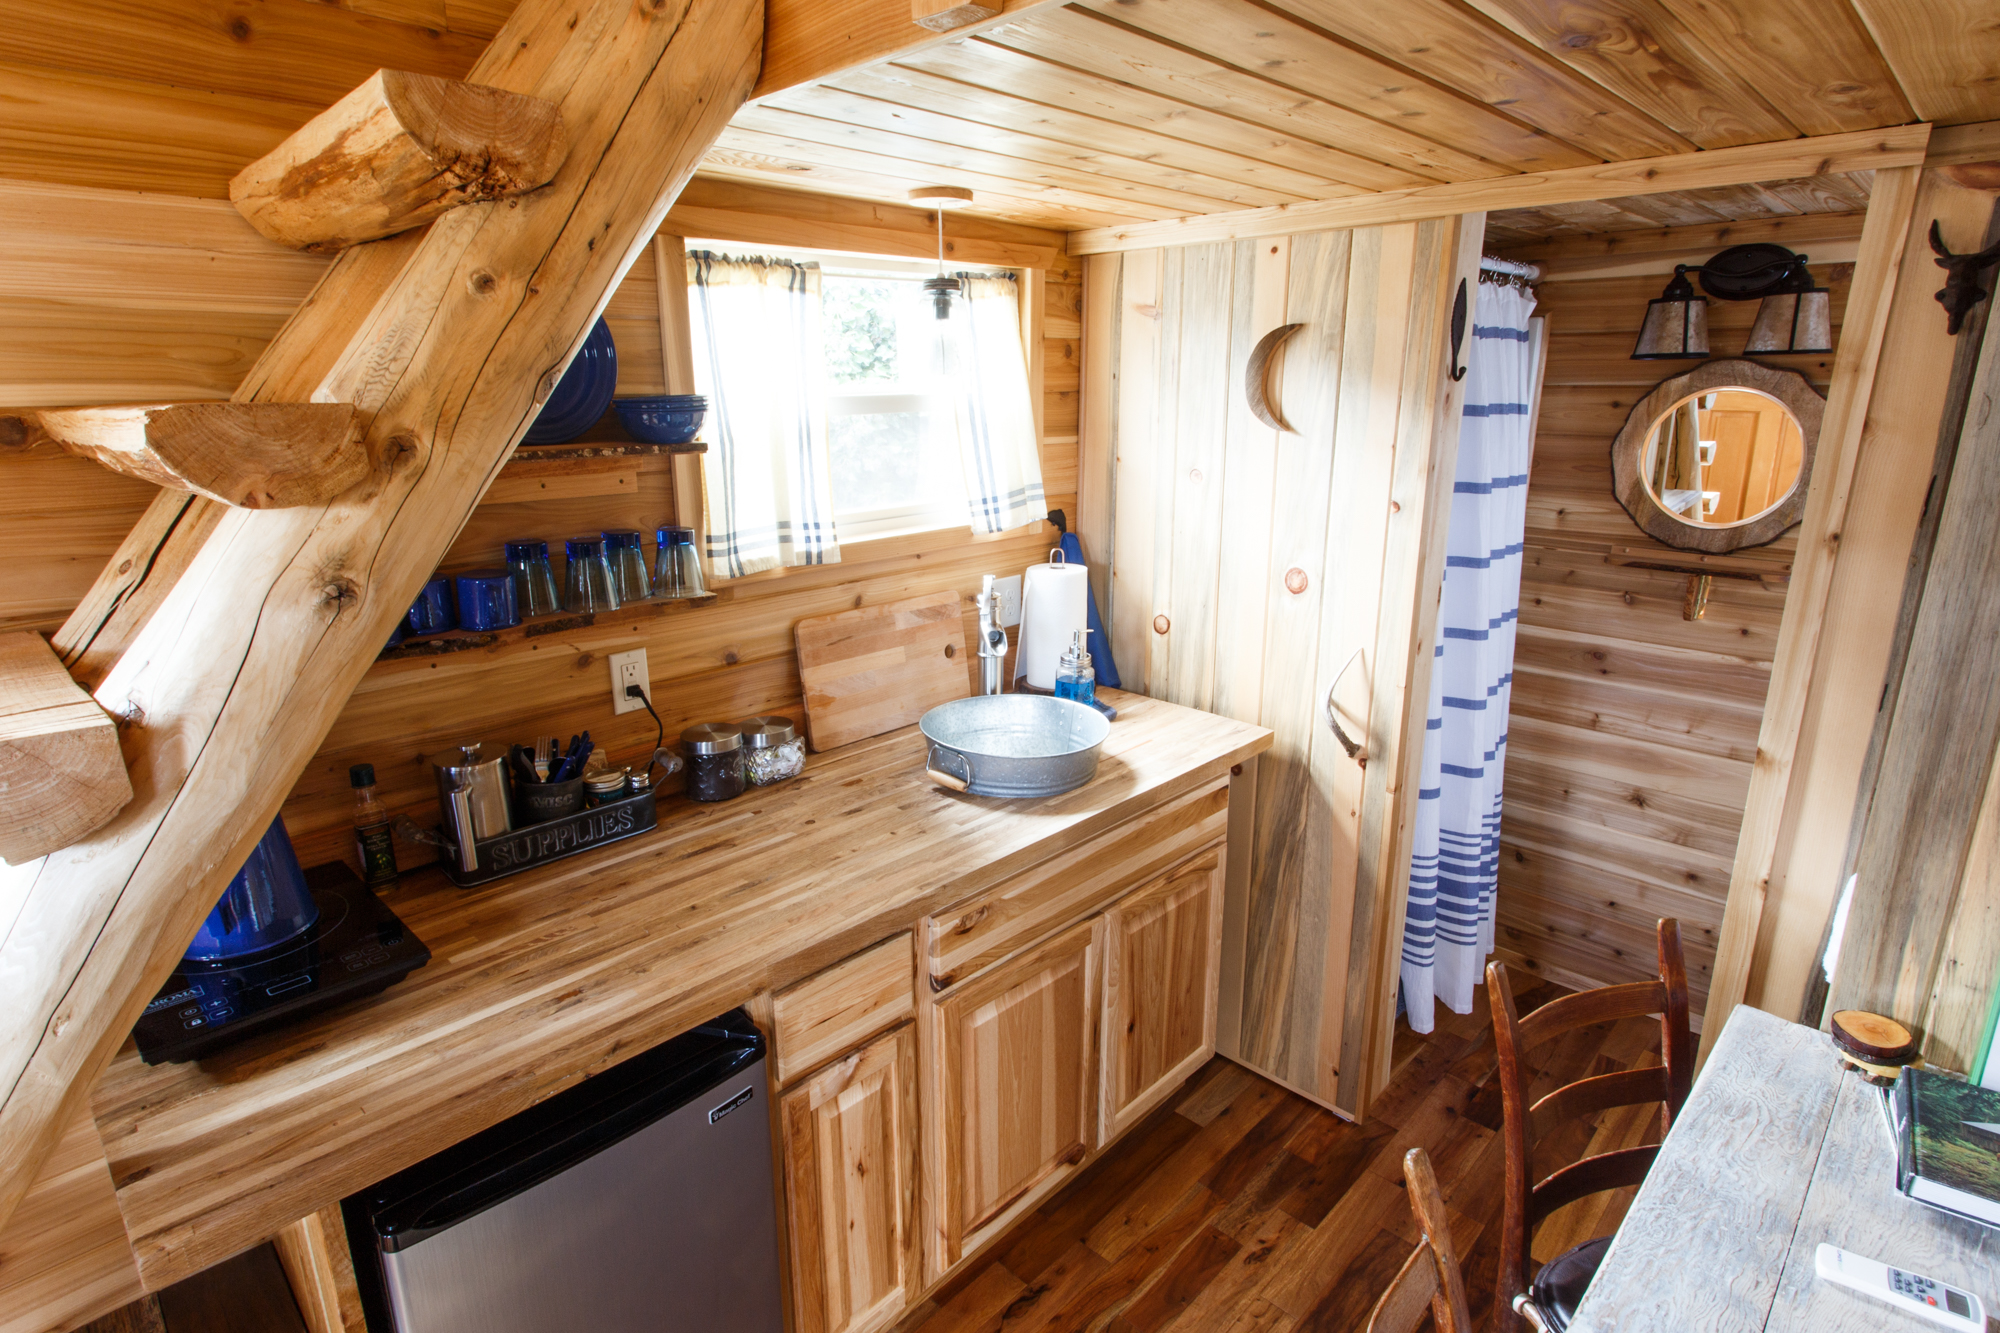 Tiny Home Kitchen Solutions That Maximize Limited Space ...